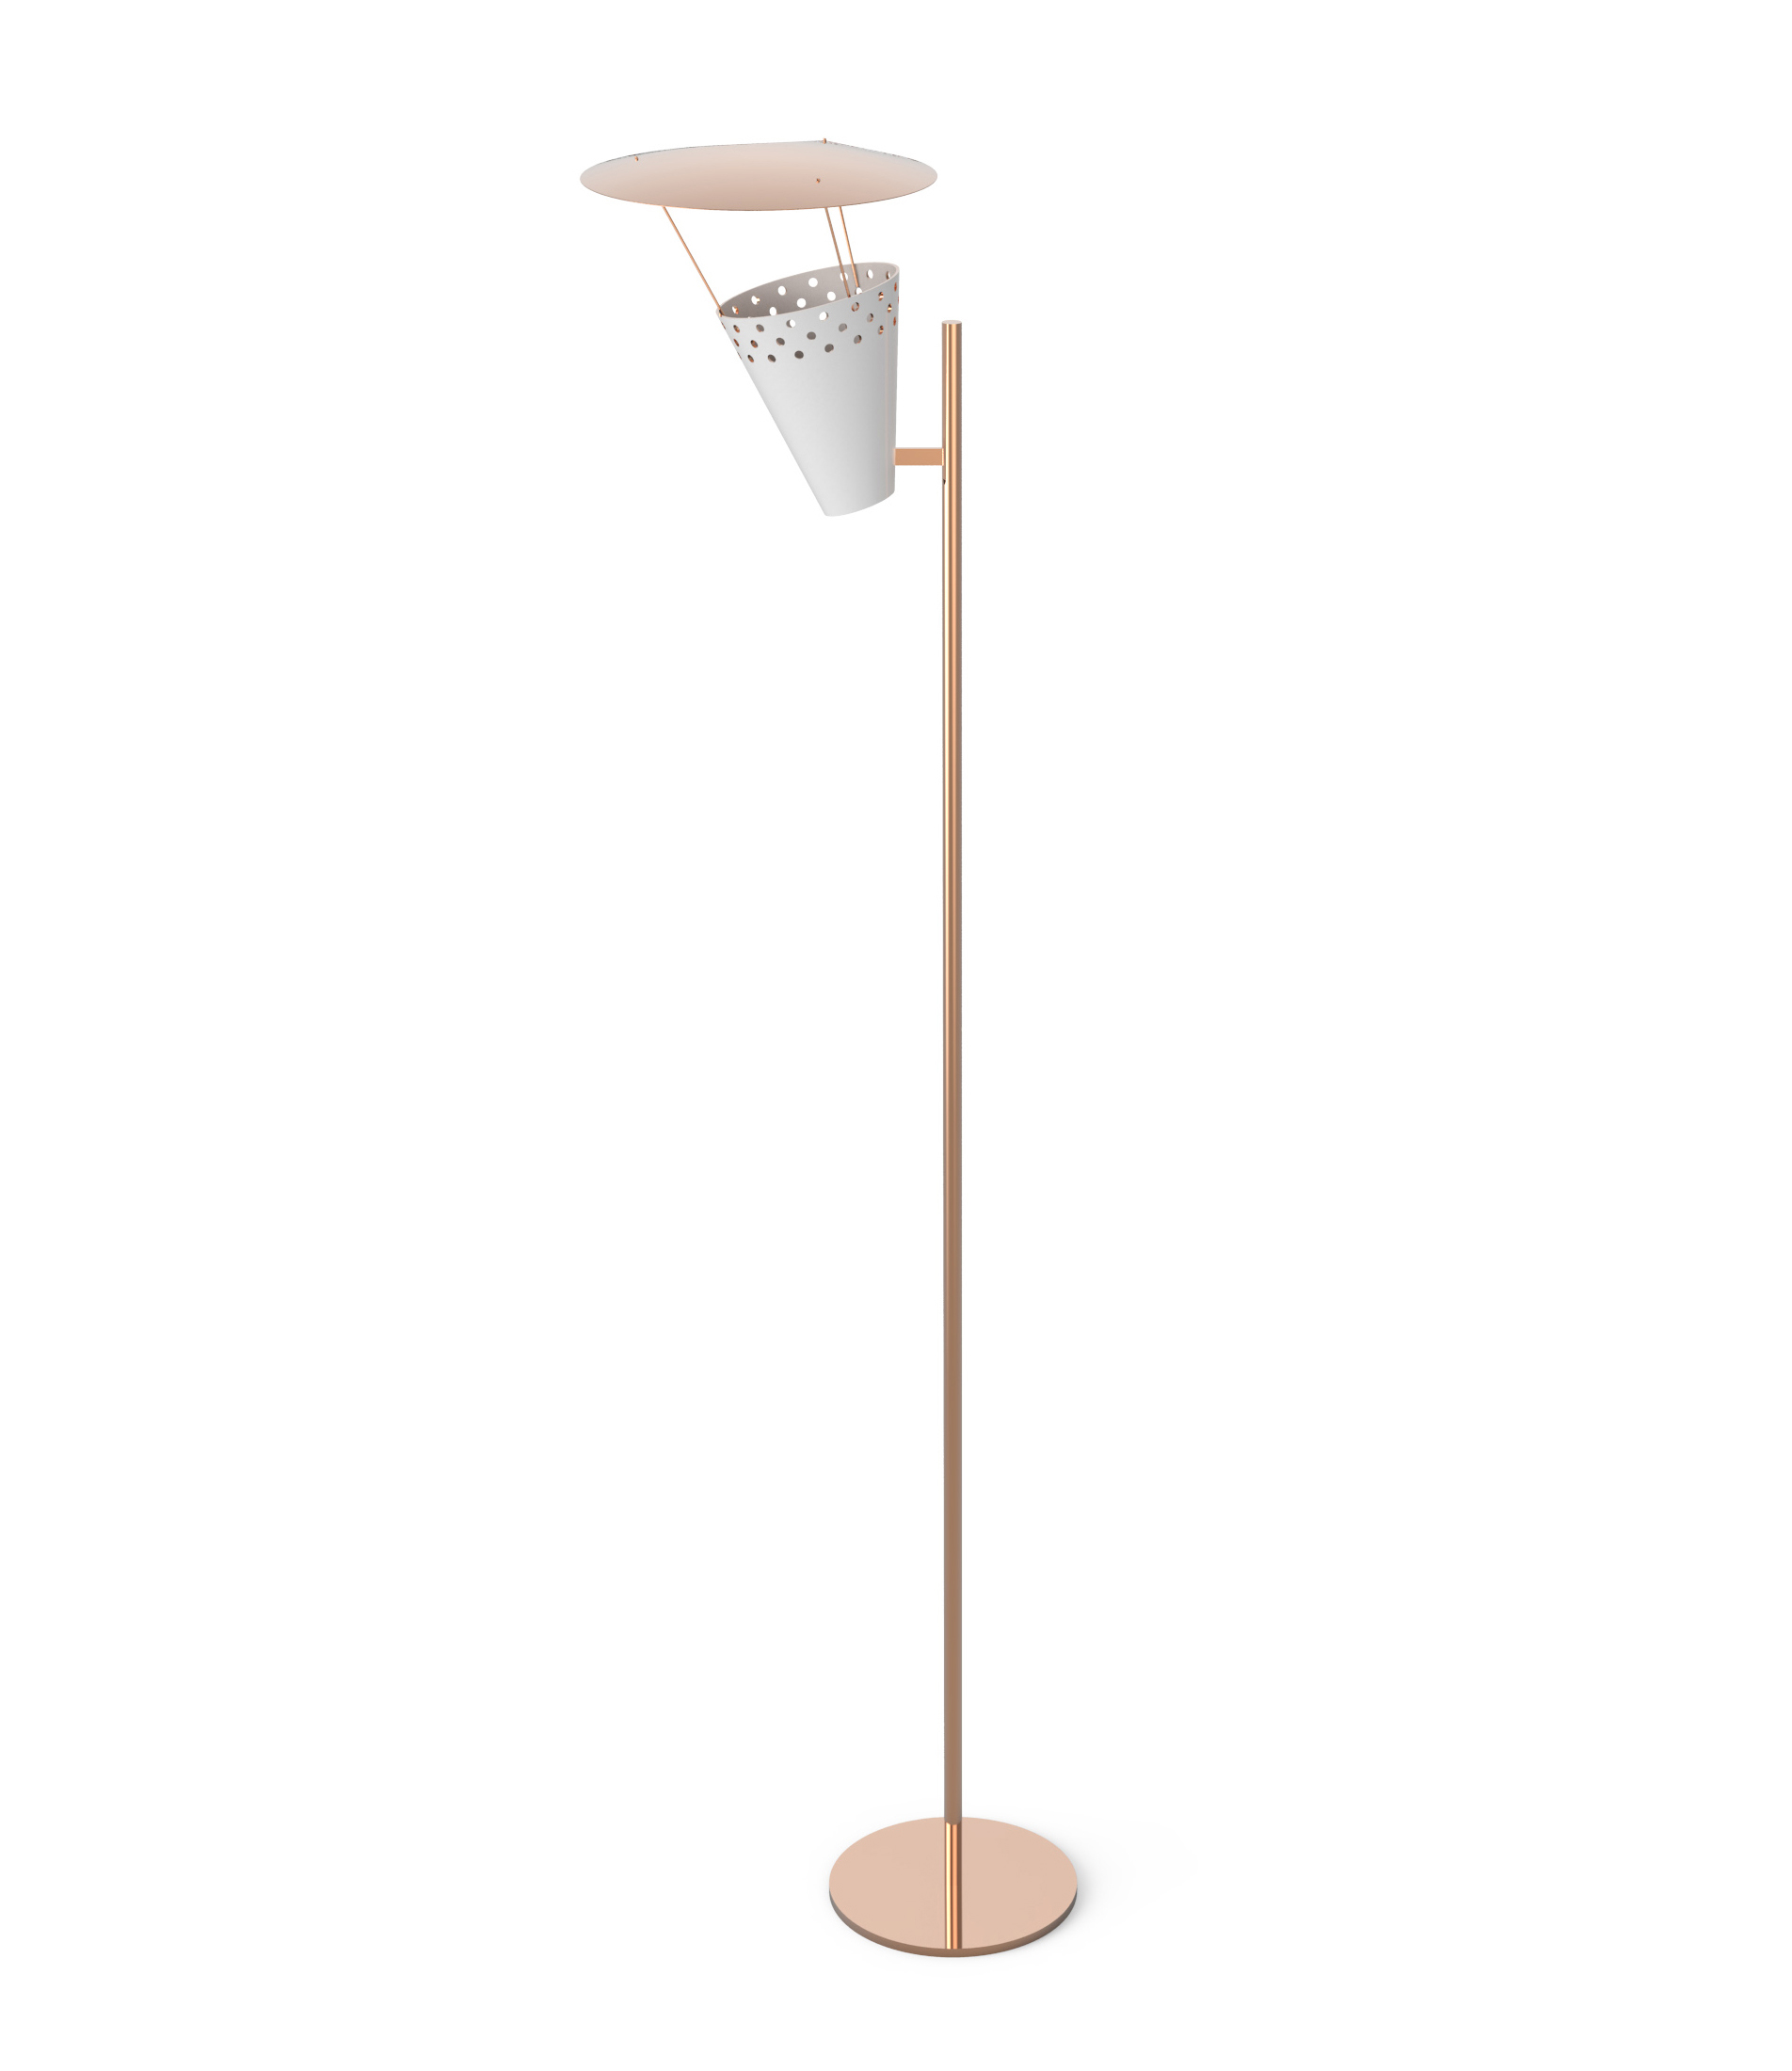 Designer Floor Lamps Why White Floor Lamps Are The Best For Your Summer Decor